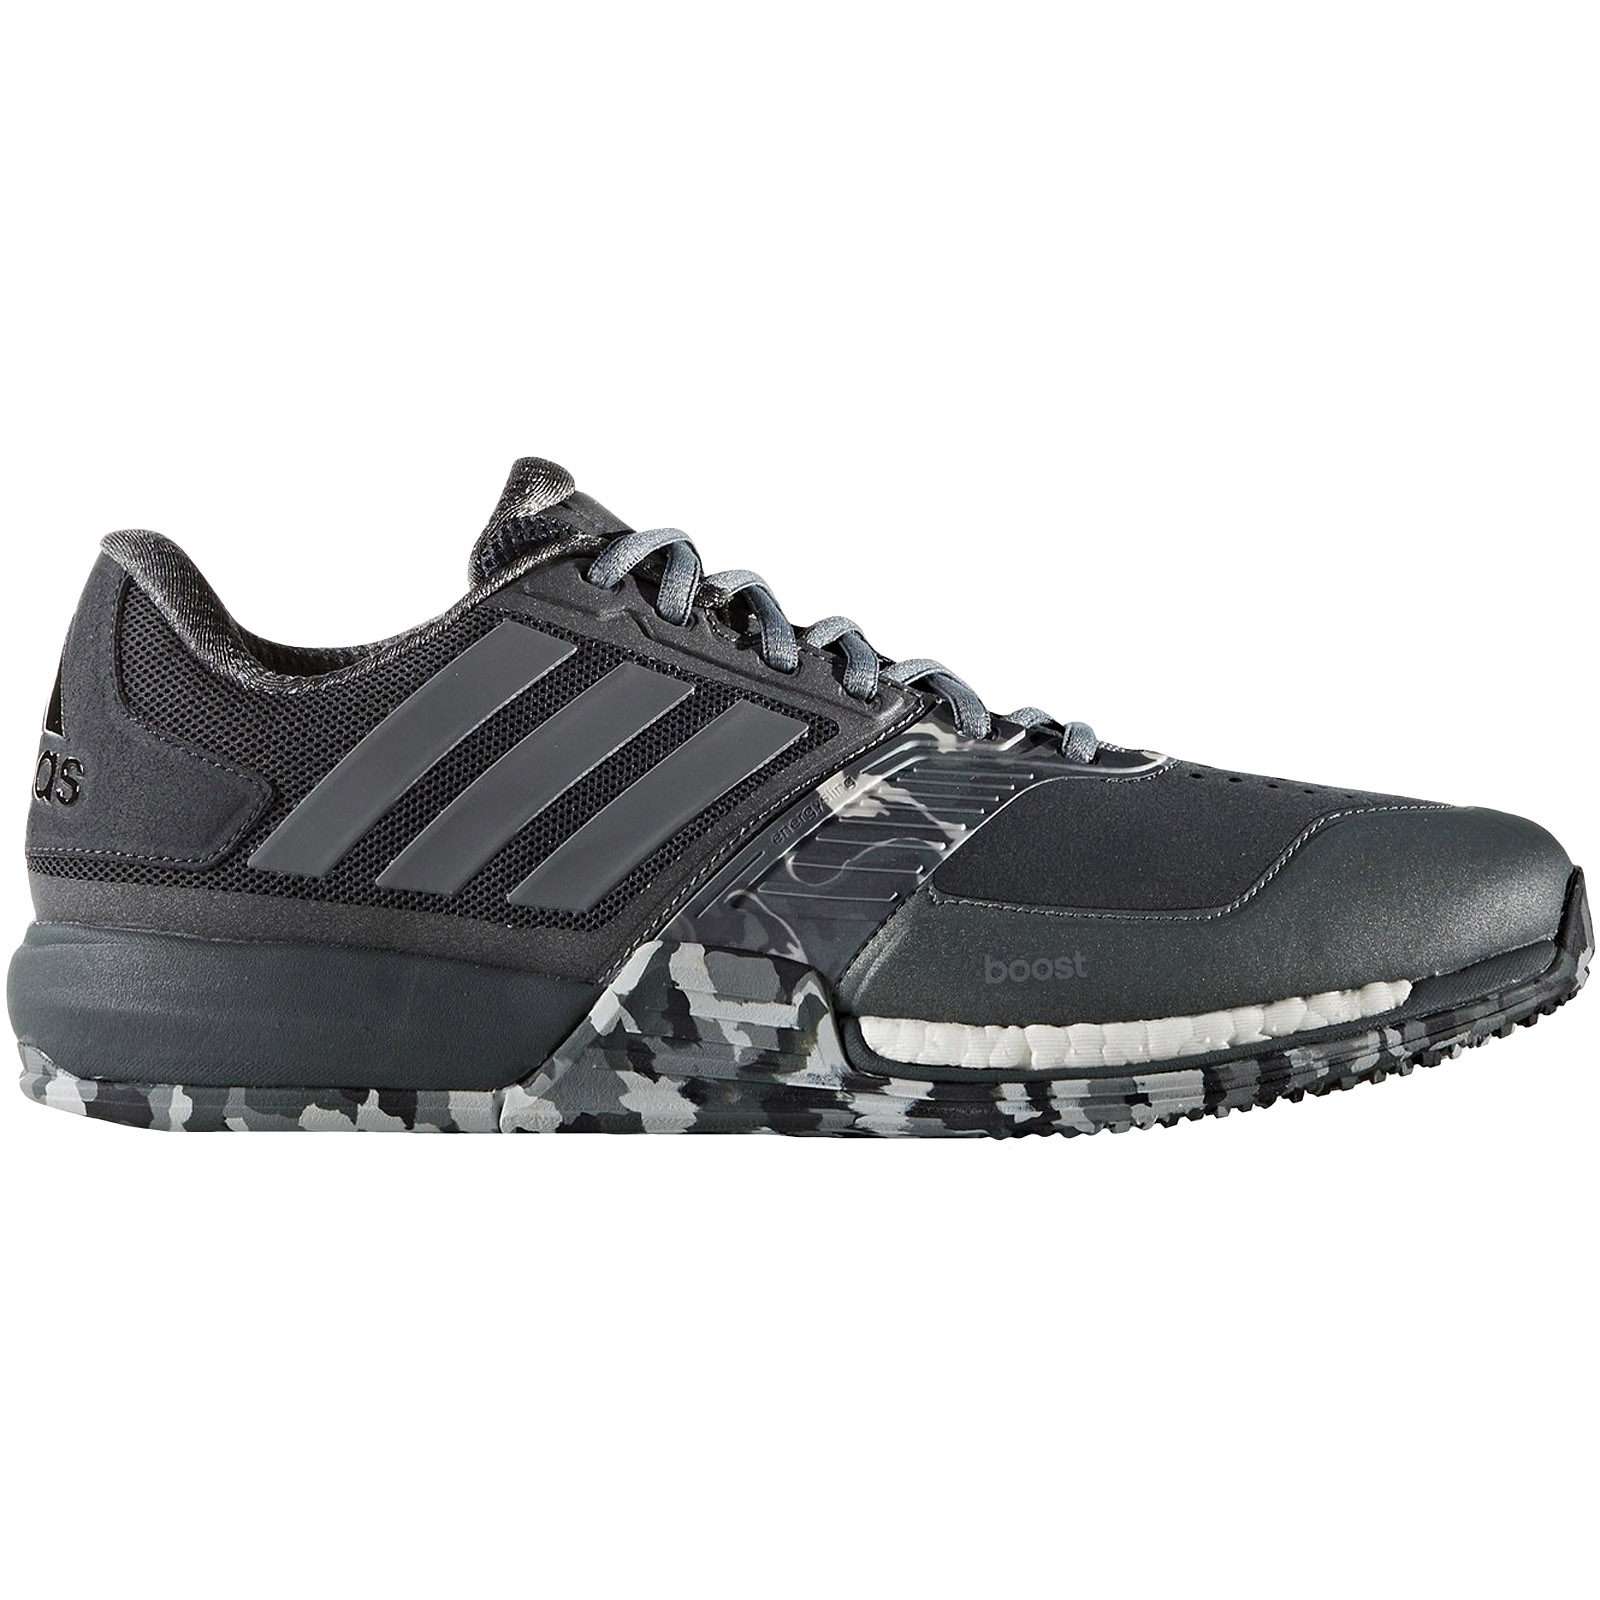 adidas Performance Men/'s Crazytrain Boost Cross-Training Shoe